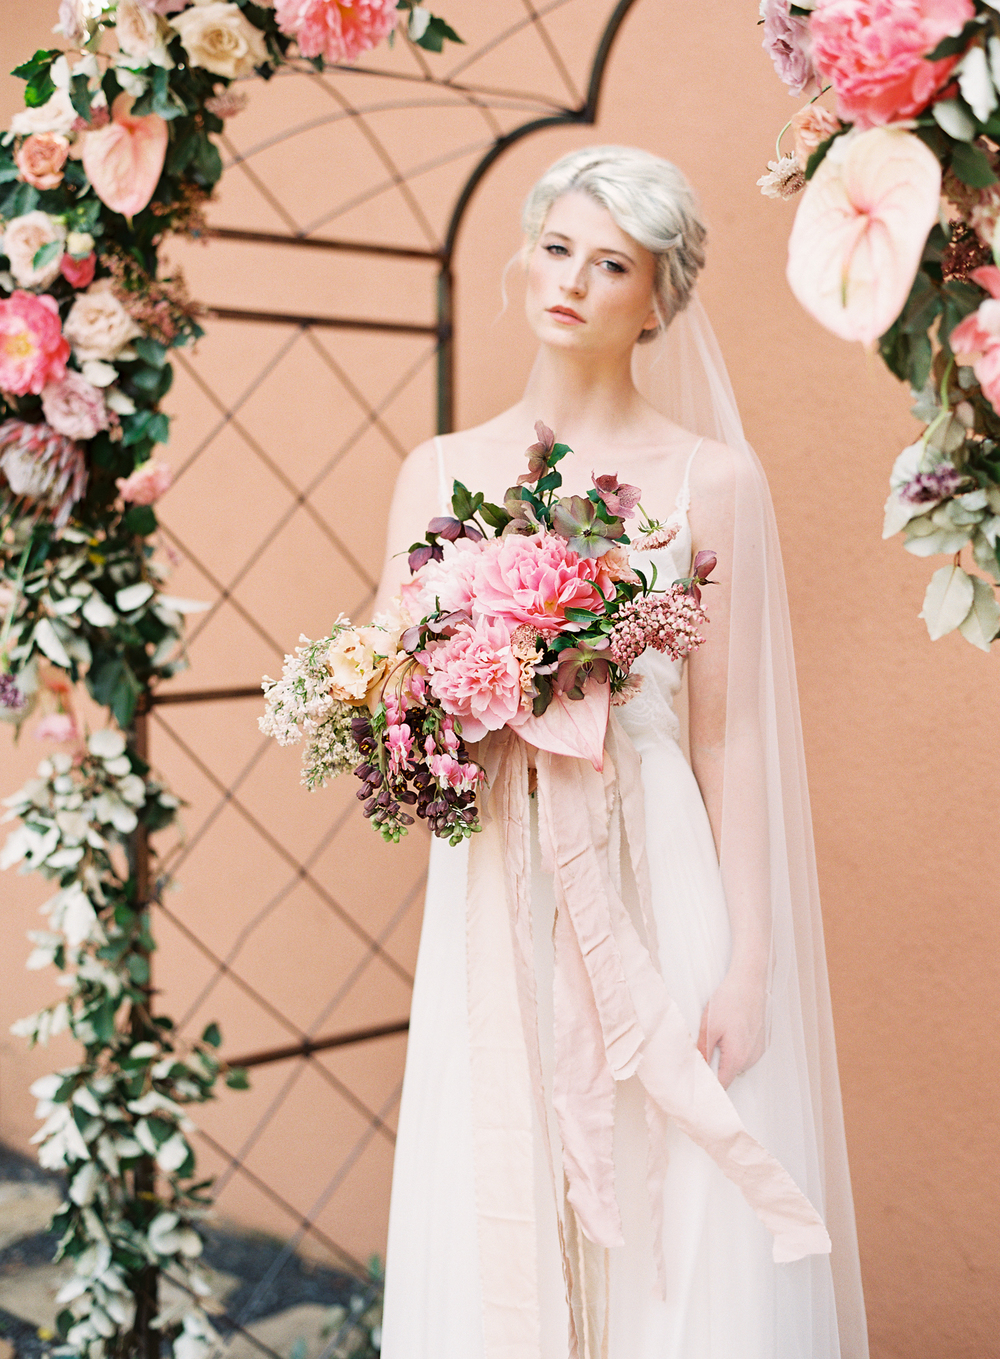 wedding arch | terracotta pink bouquet wedding inspiration designed by The Wildflowers | follow us on instagram: @ thewildflowers.events